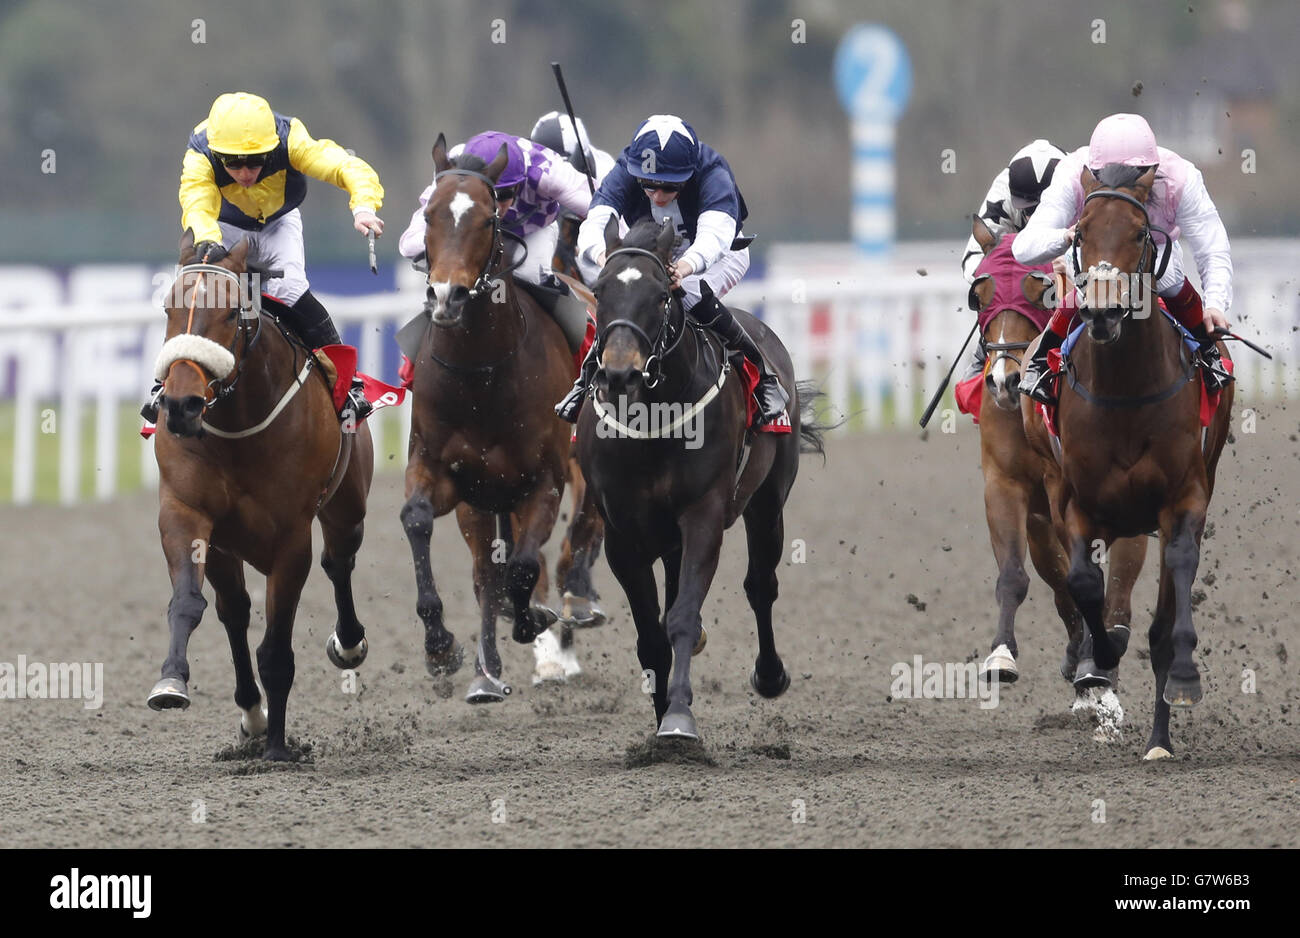 Horse racing easter family fun day kempton racecourse stock horse racing easter family fun day kempton racecourse negle Gallery